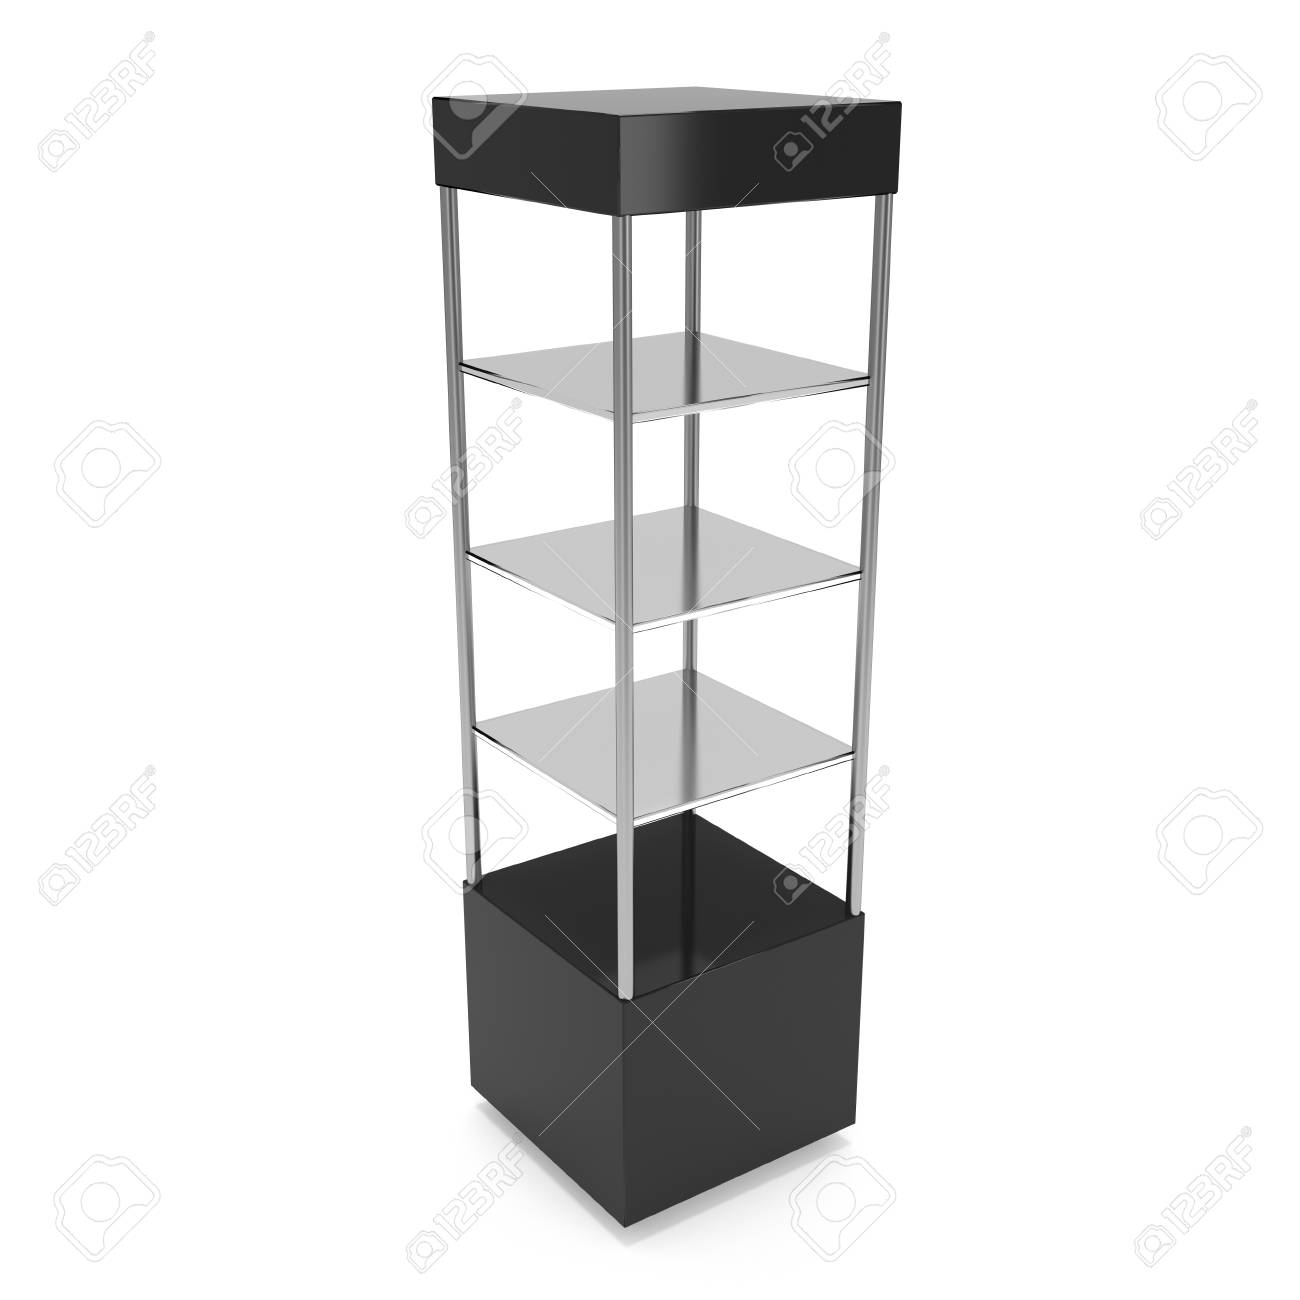 Trade Show Booth With Shelves : Empty showcase with glass shelves for exhibit d render